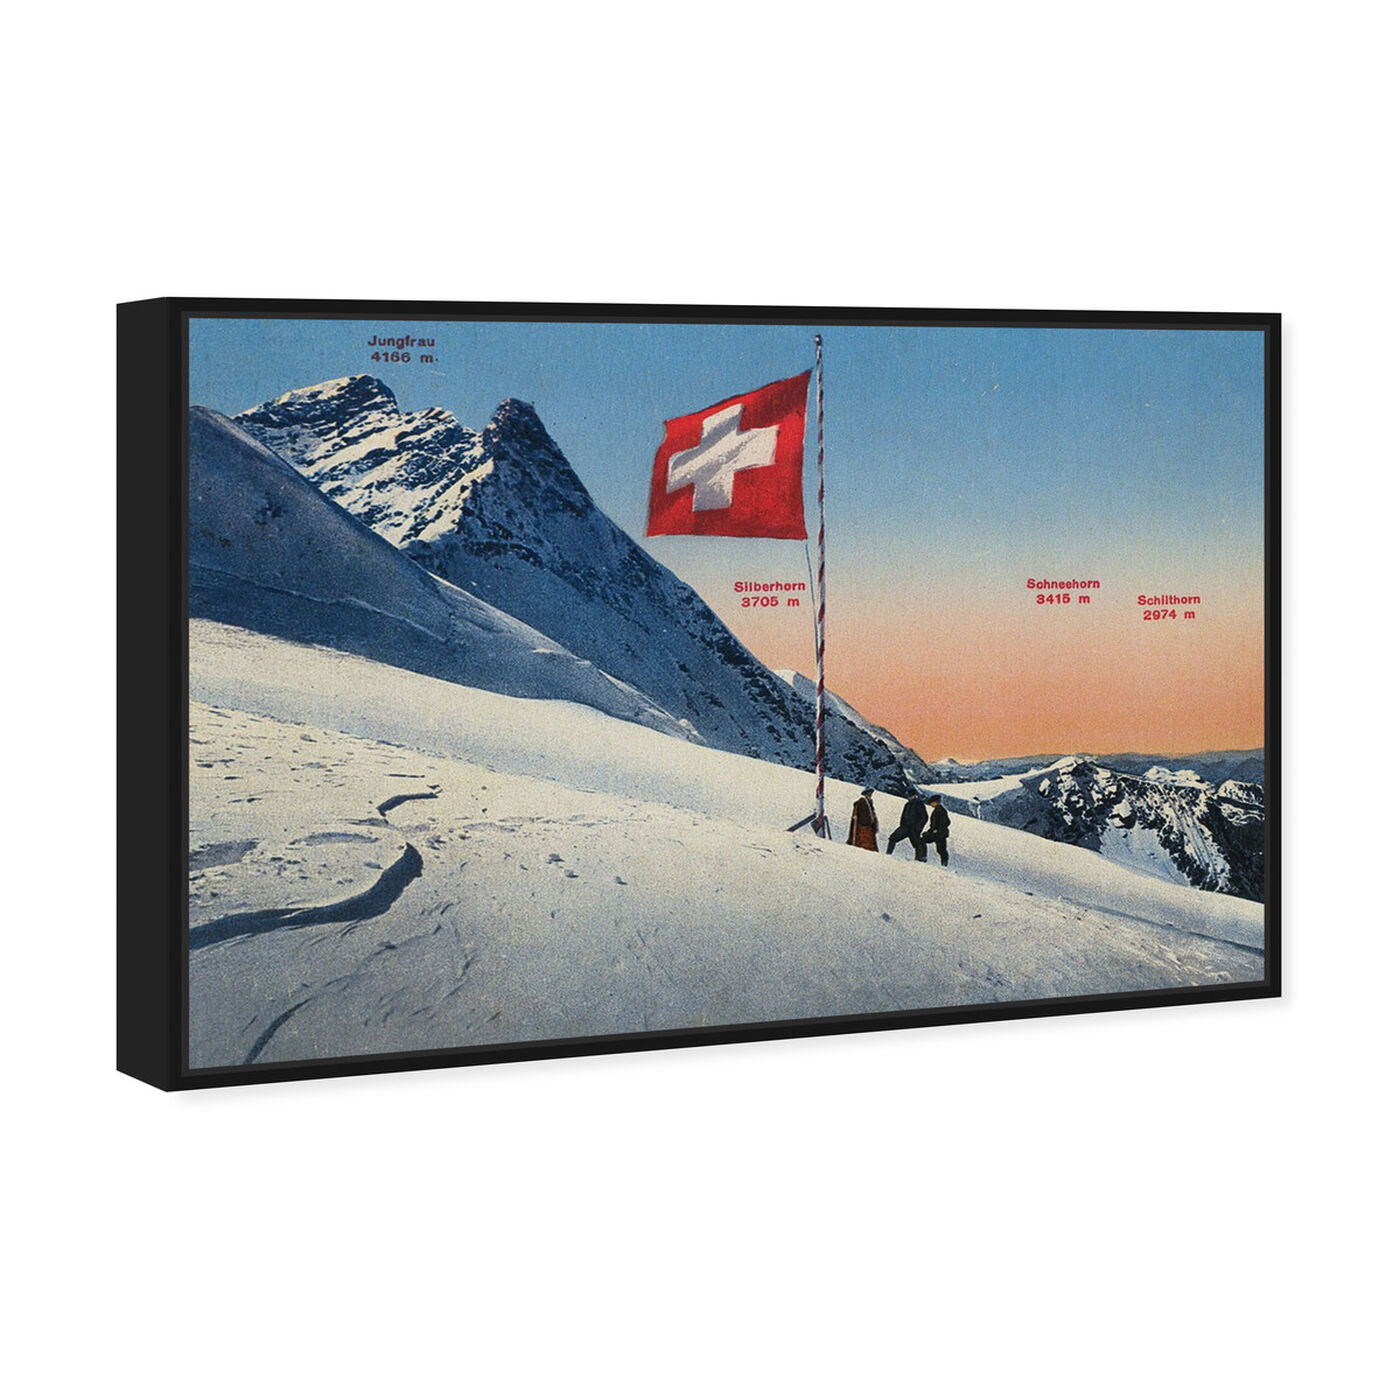 Angled view of Jungfrau featuring sports and teams and skiing art.